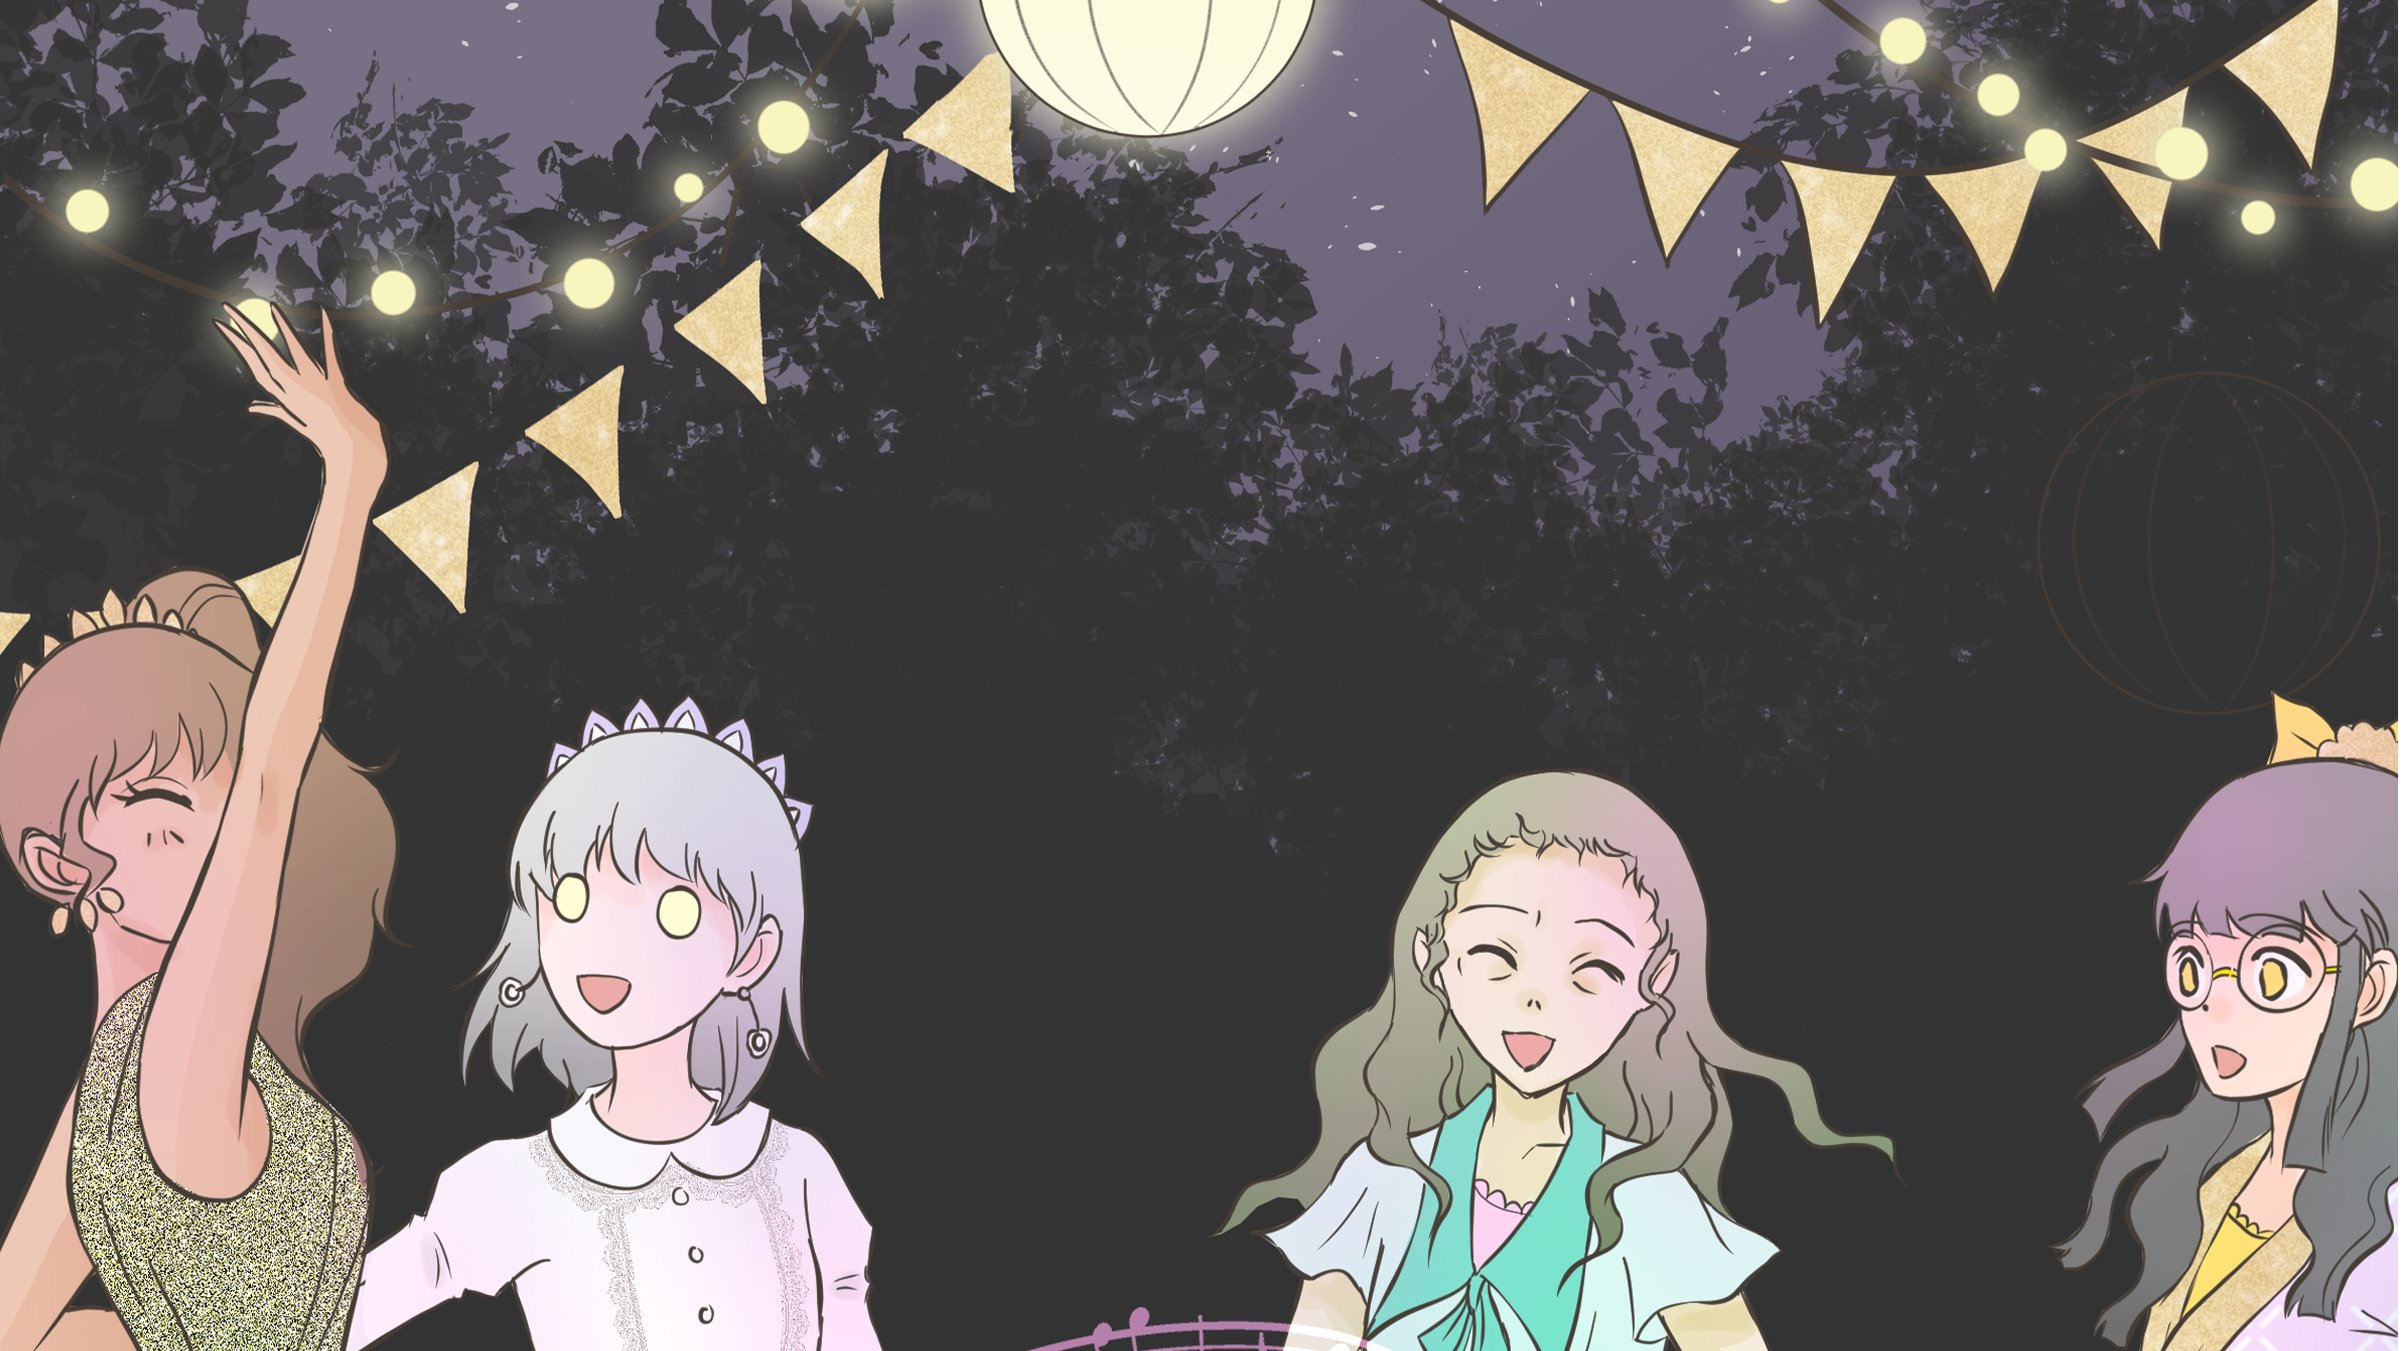 Characters in Cursed Princess Club frolick under bunting at night in a forest. One has disturbing all-white eyes, another sallow skin and sunken eyes.